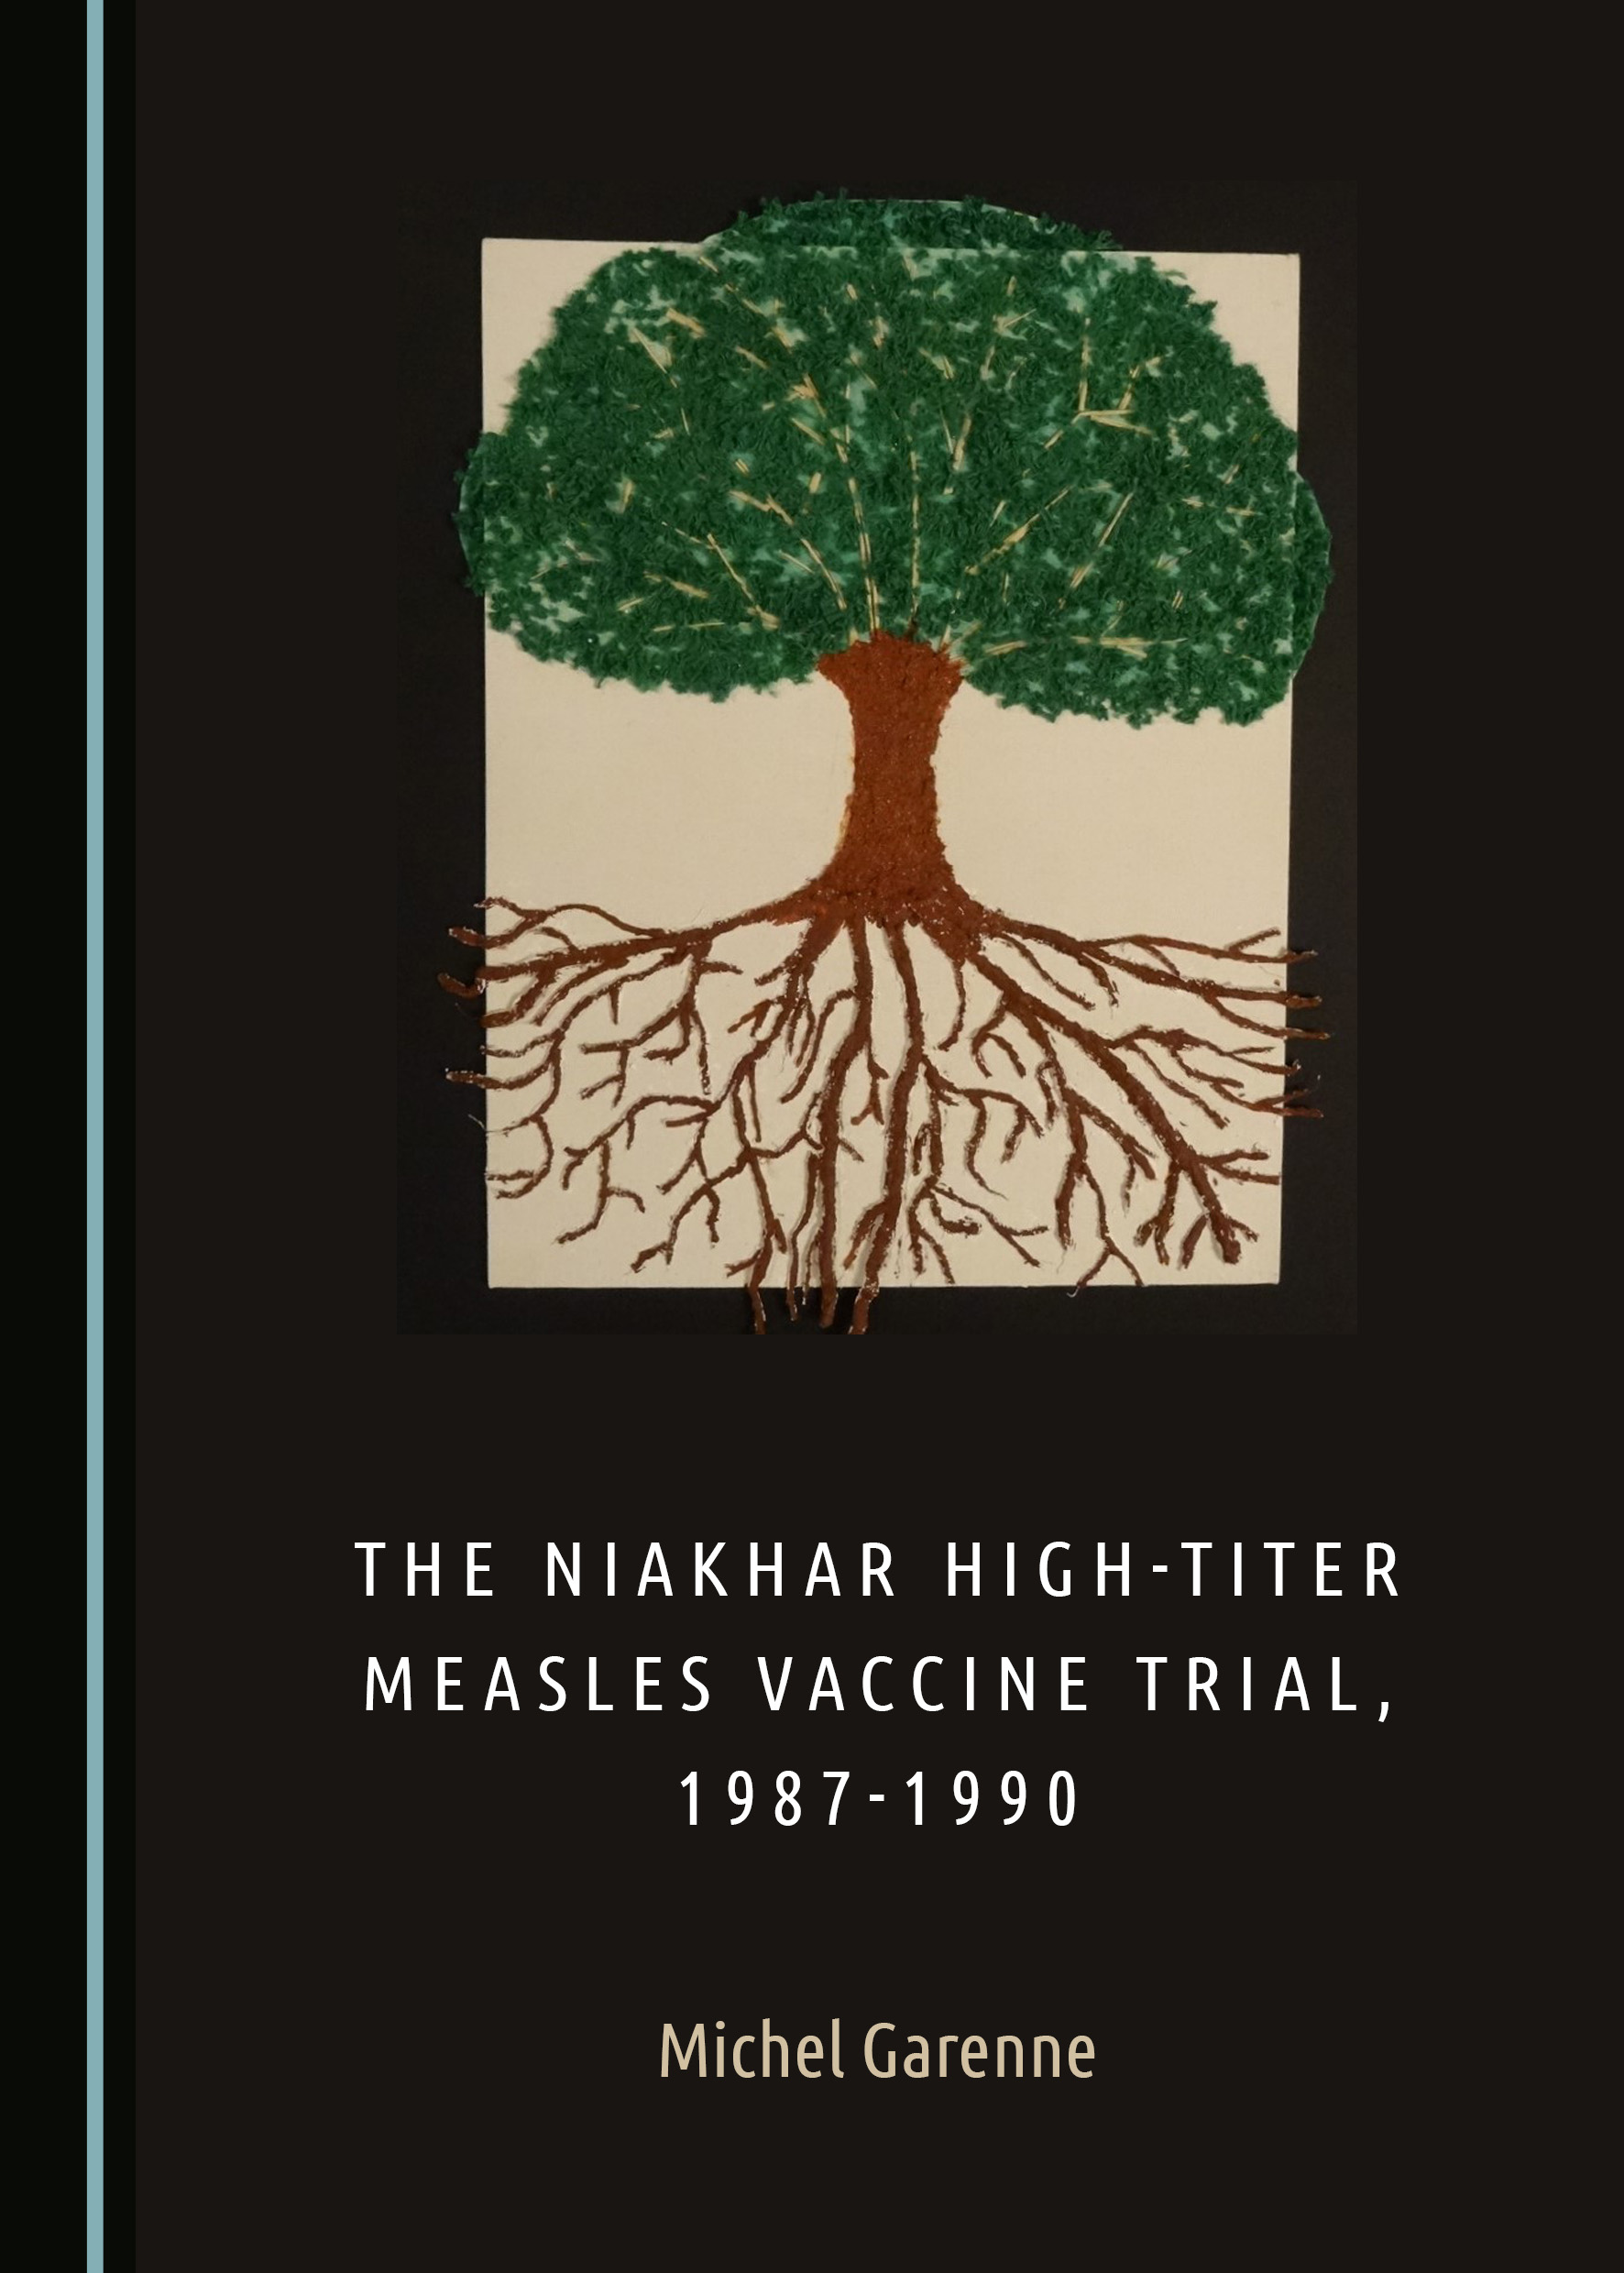 The Niakhar High-Titer Measles Vaccine Trial, 1987-1990